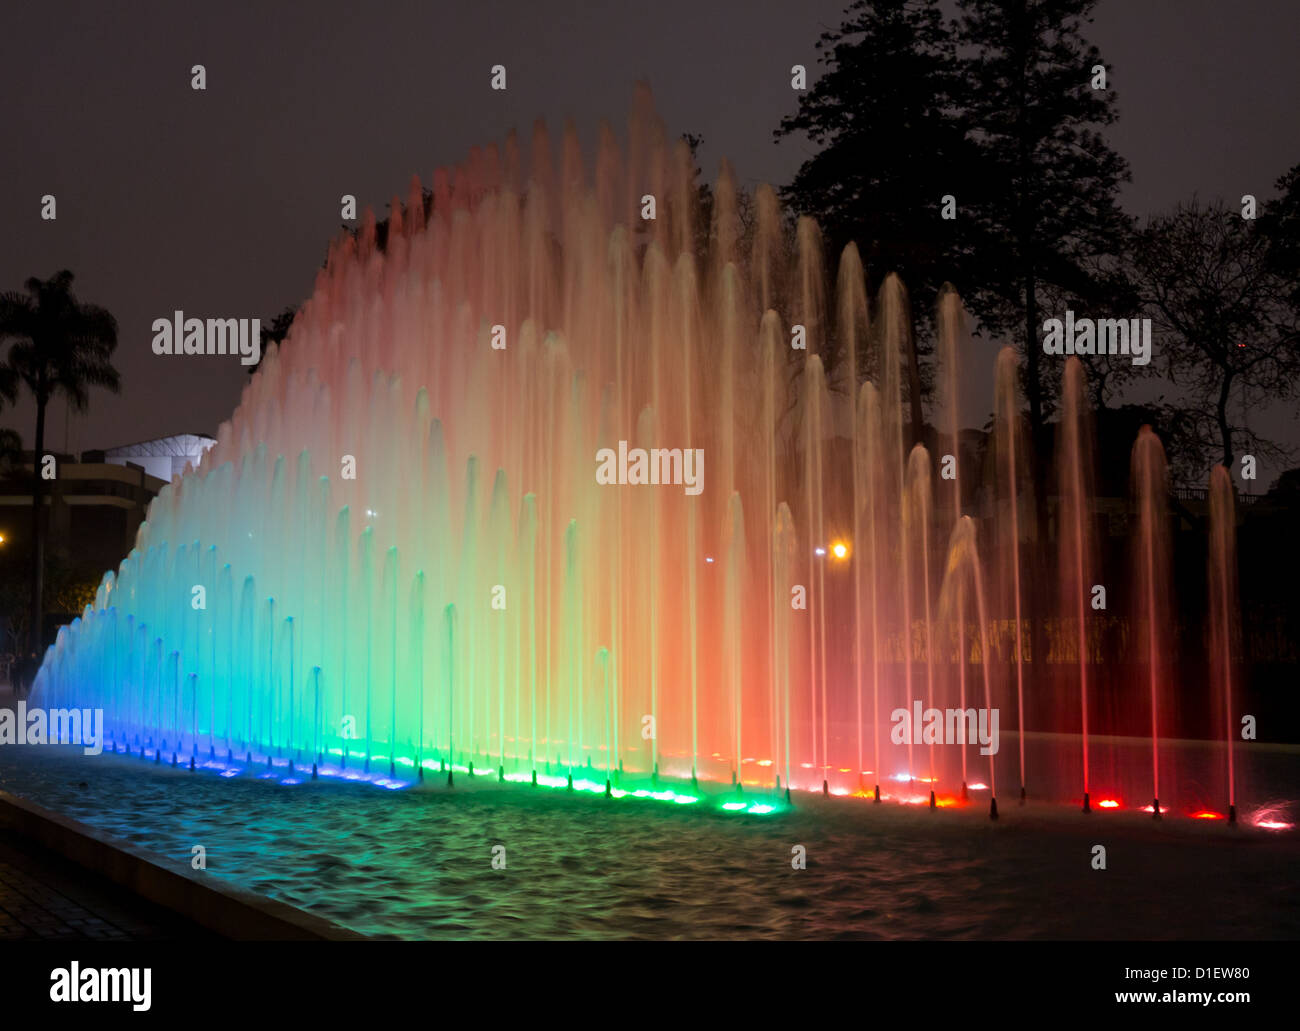 Illuminated fountains at dusk in Magic Water Tour / Circuit in Reserve Park, Lima, Peru - Stock Image